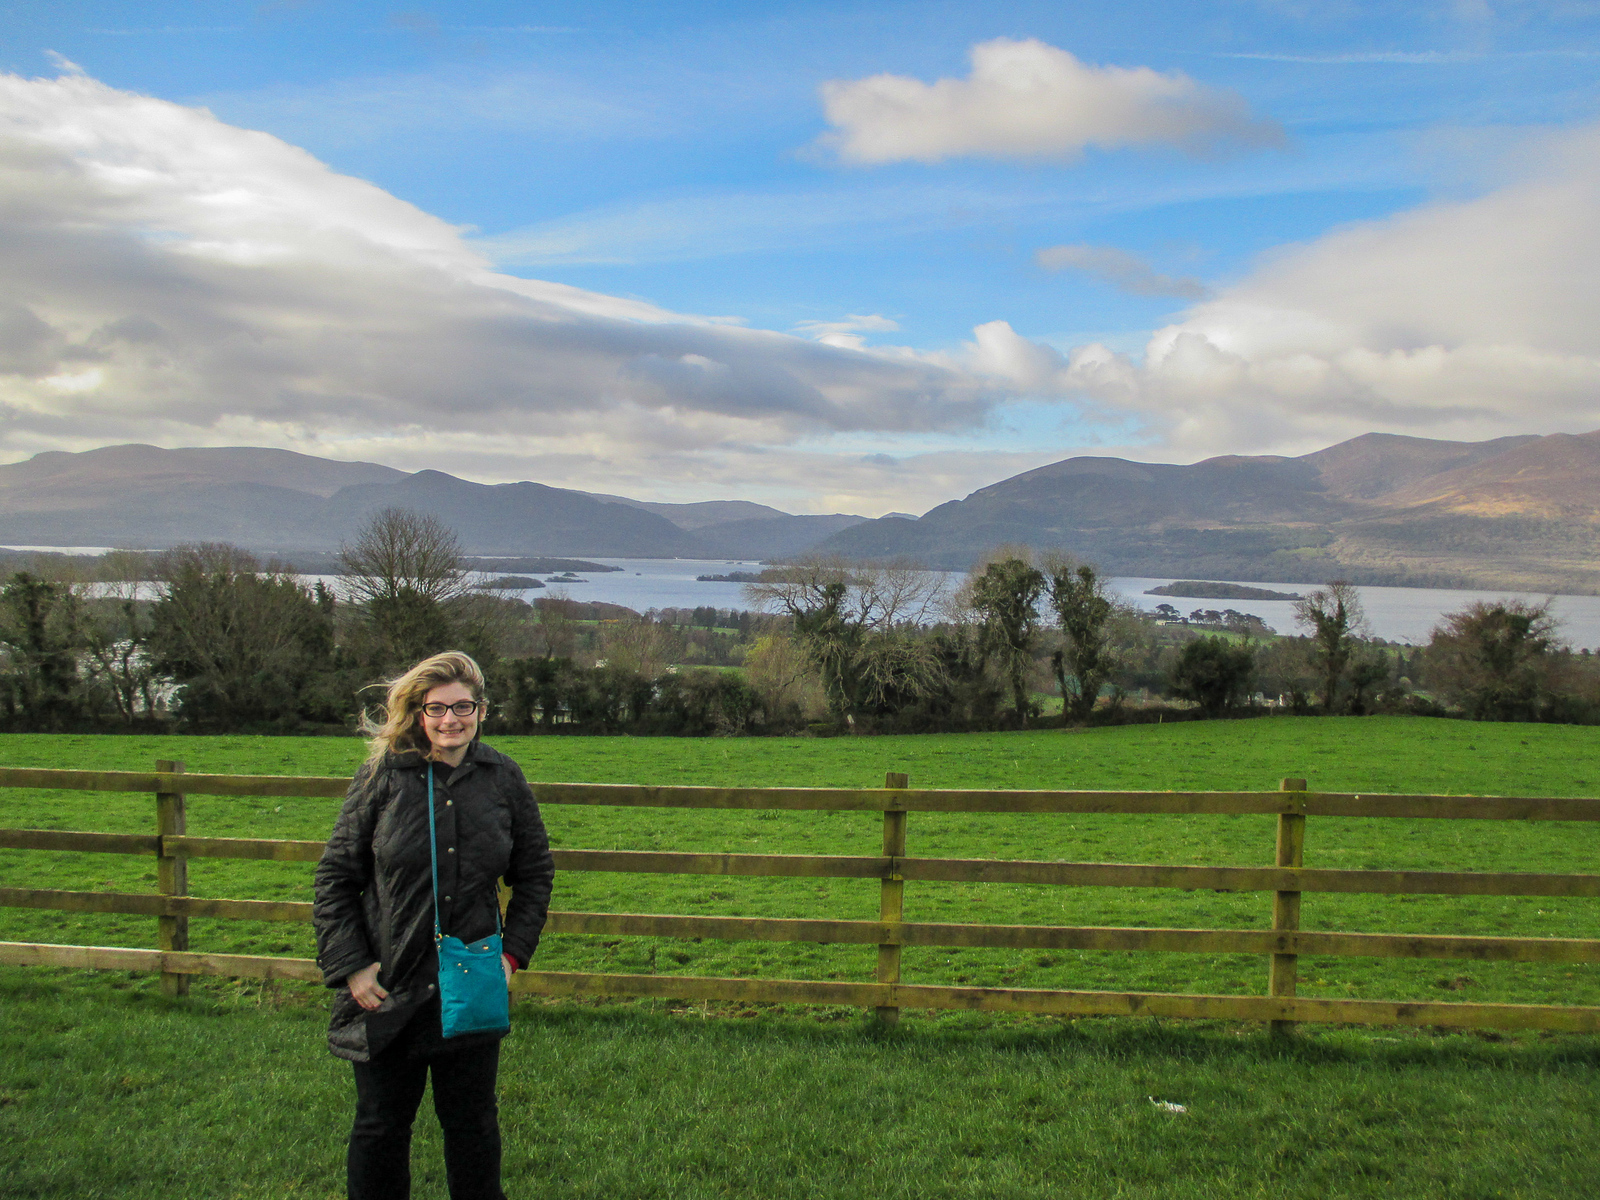 solo travel to ireland for the scenery